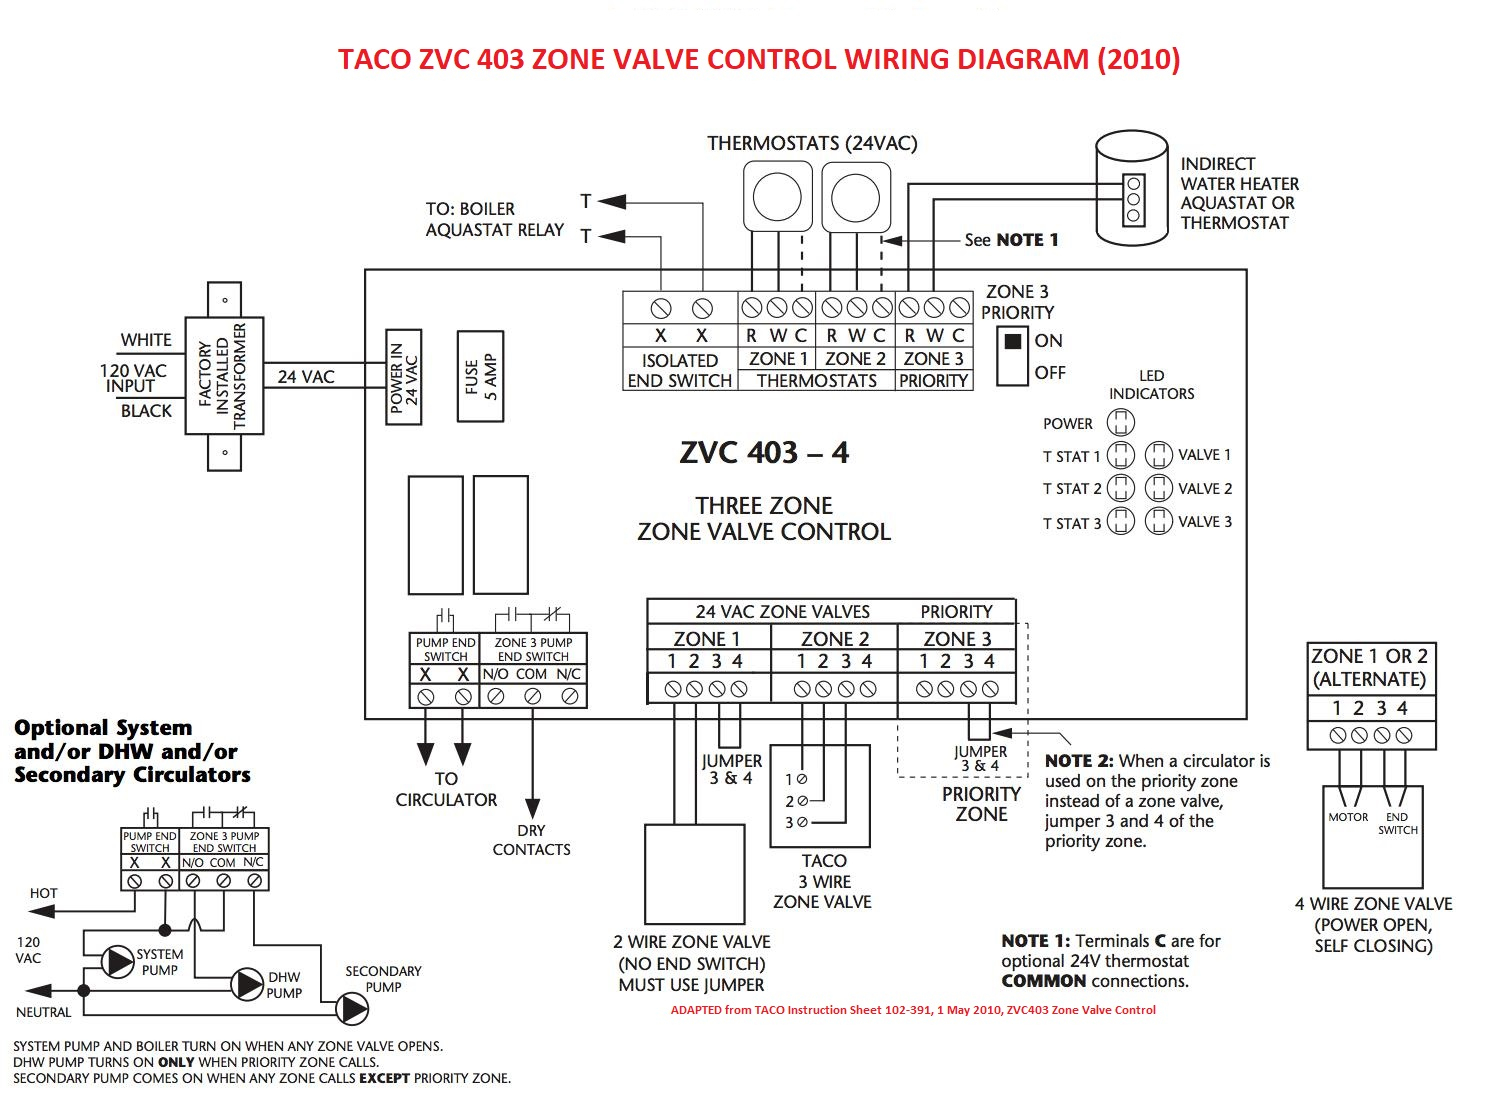 Zone Valve Wiring Installation & Instructions: Guide To Heating - Nest Wiring Diagram From 8124 Aquastat And 24V Transformer